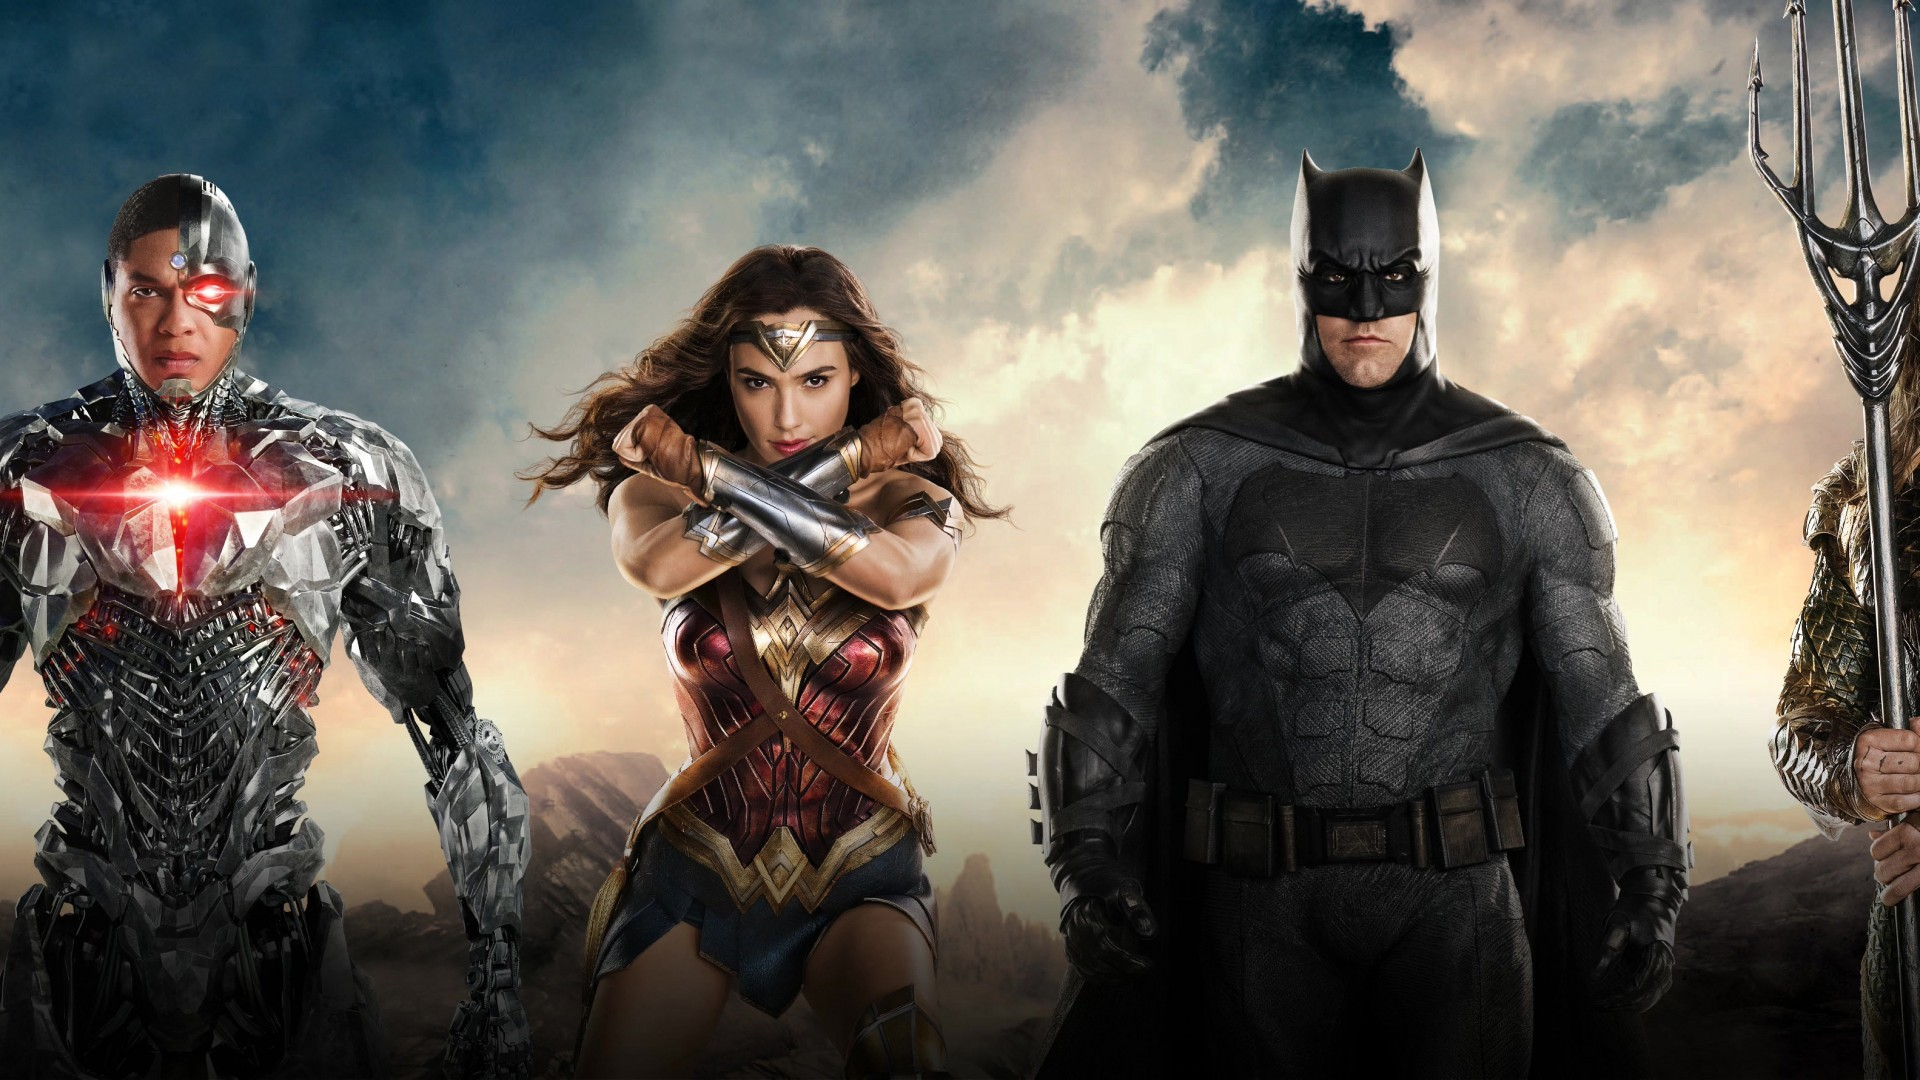 1920x1080 Movies Justice League Wallpaper 45 Download